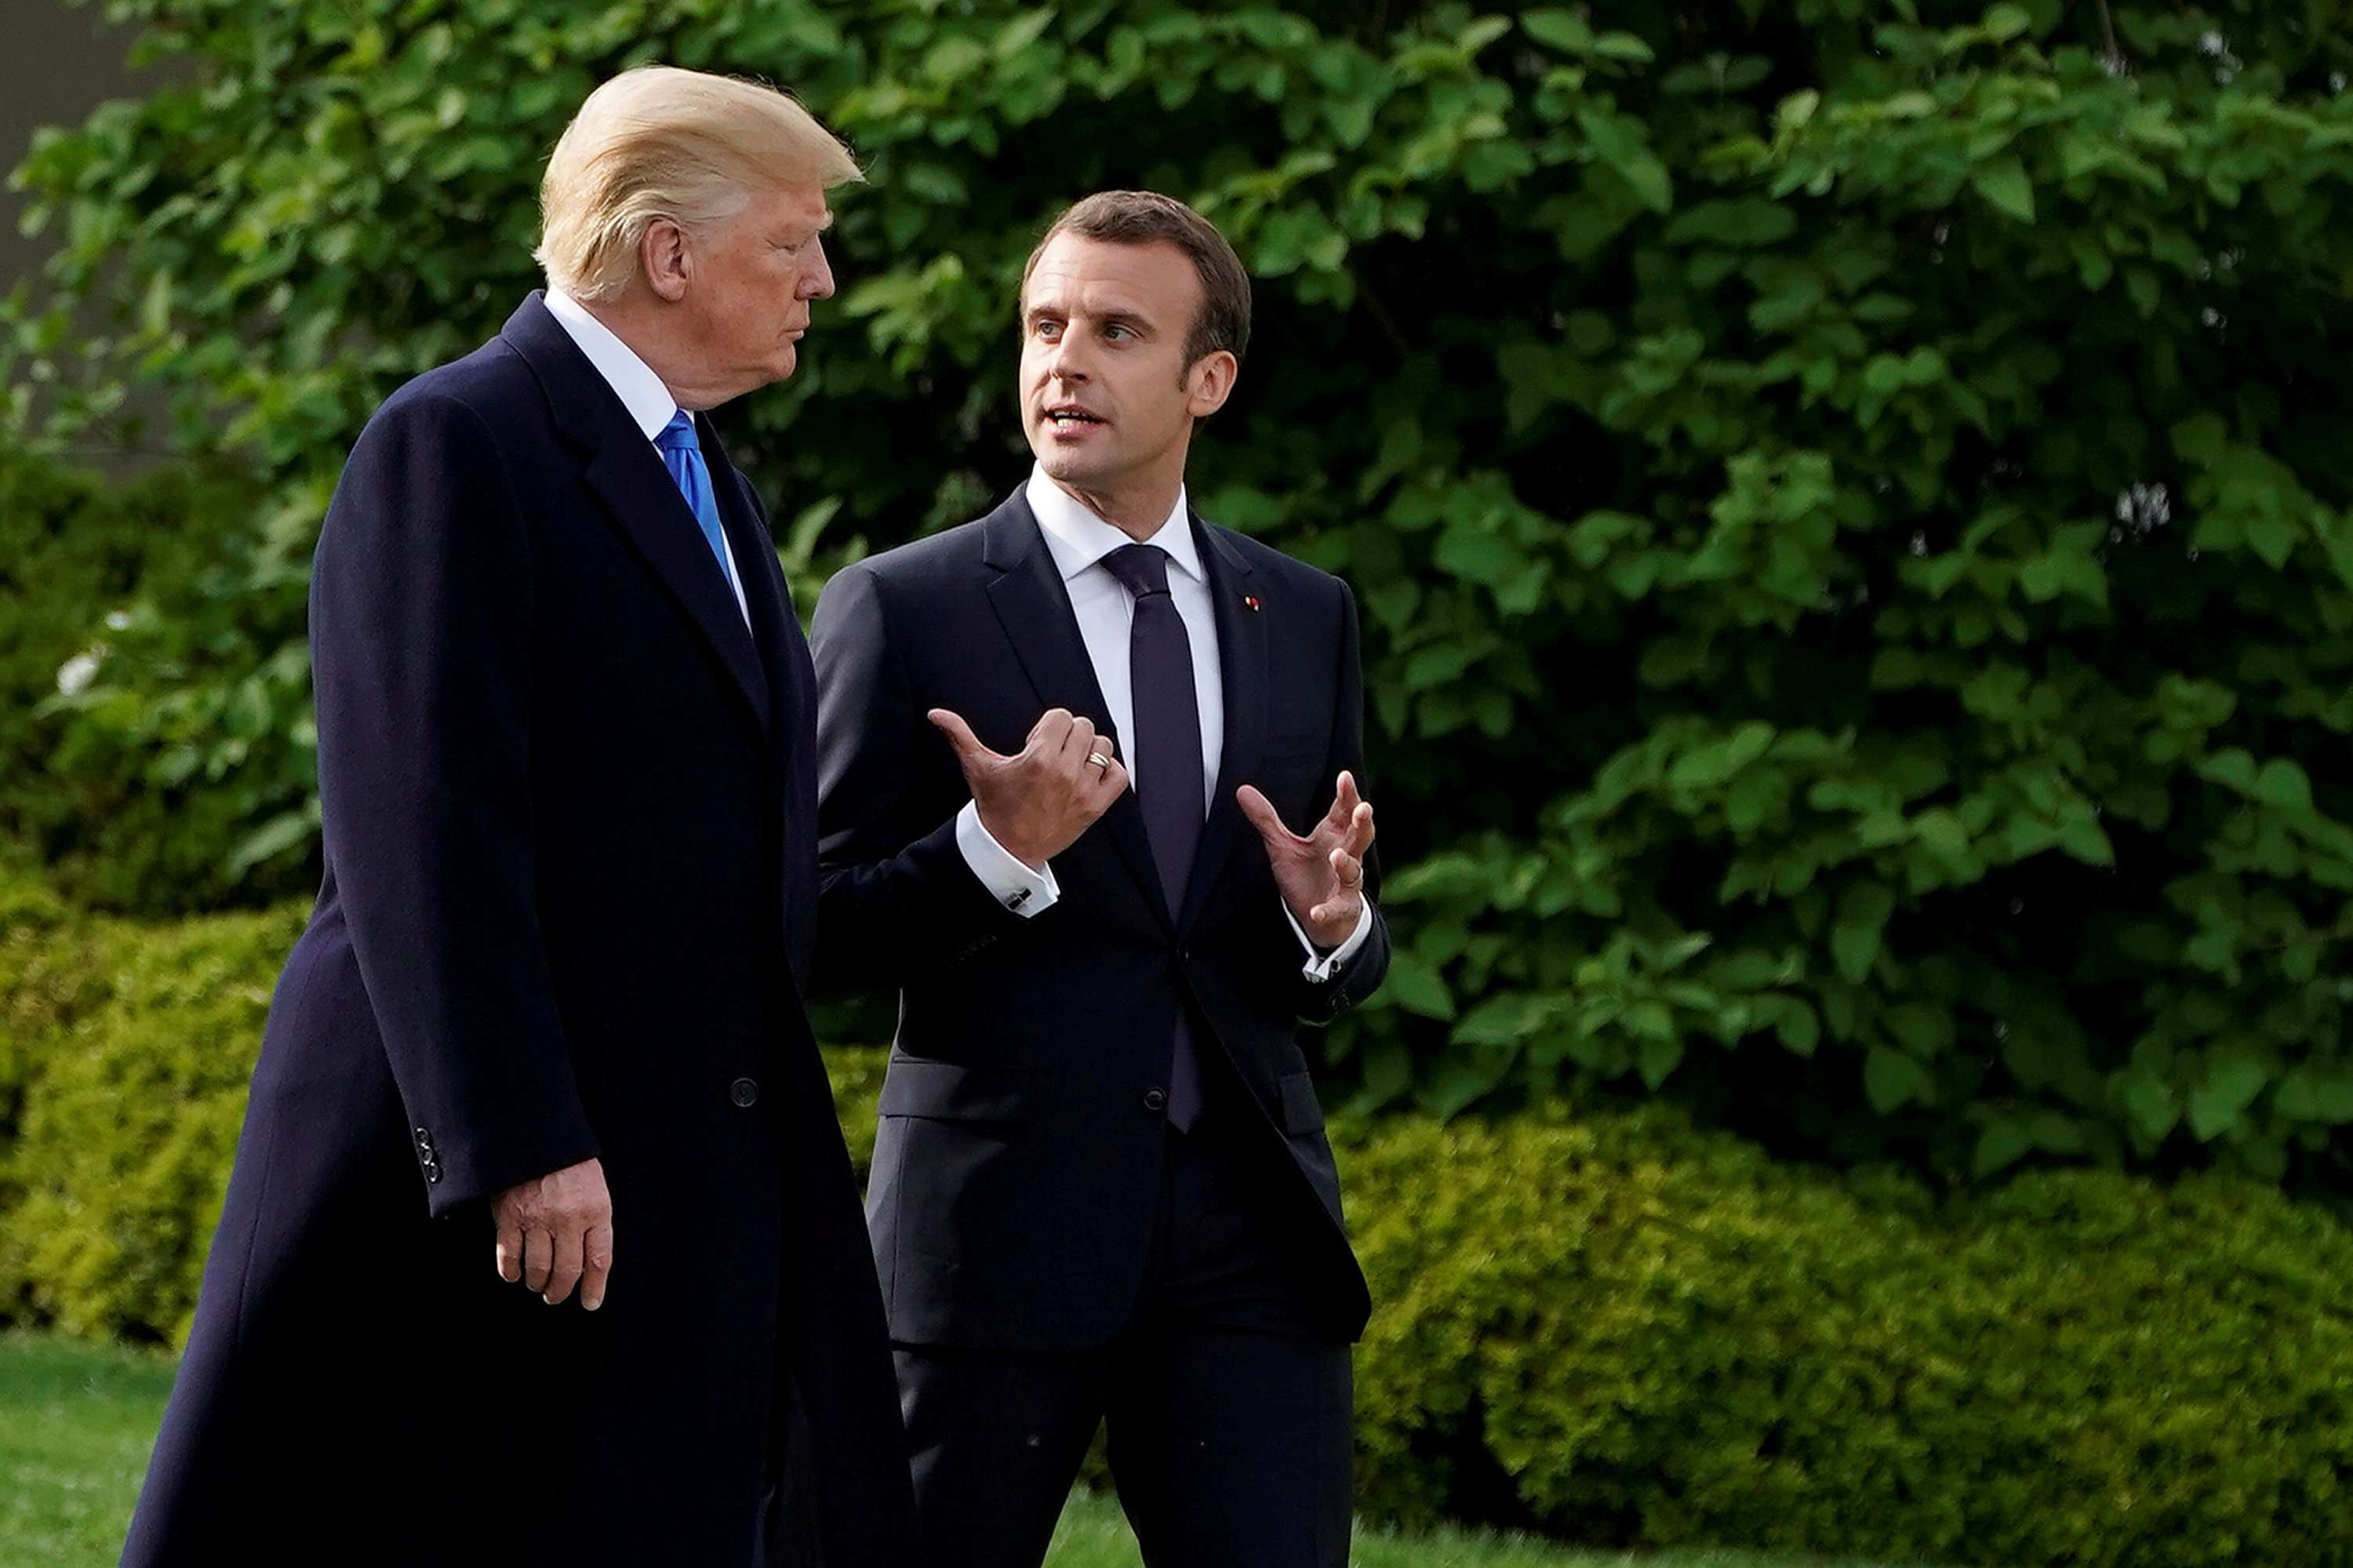 US President Donald Trump (L) and French President Emmanuel Macron walk from the Oval Office in Washington, on April 23. (Reuters)